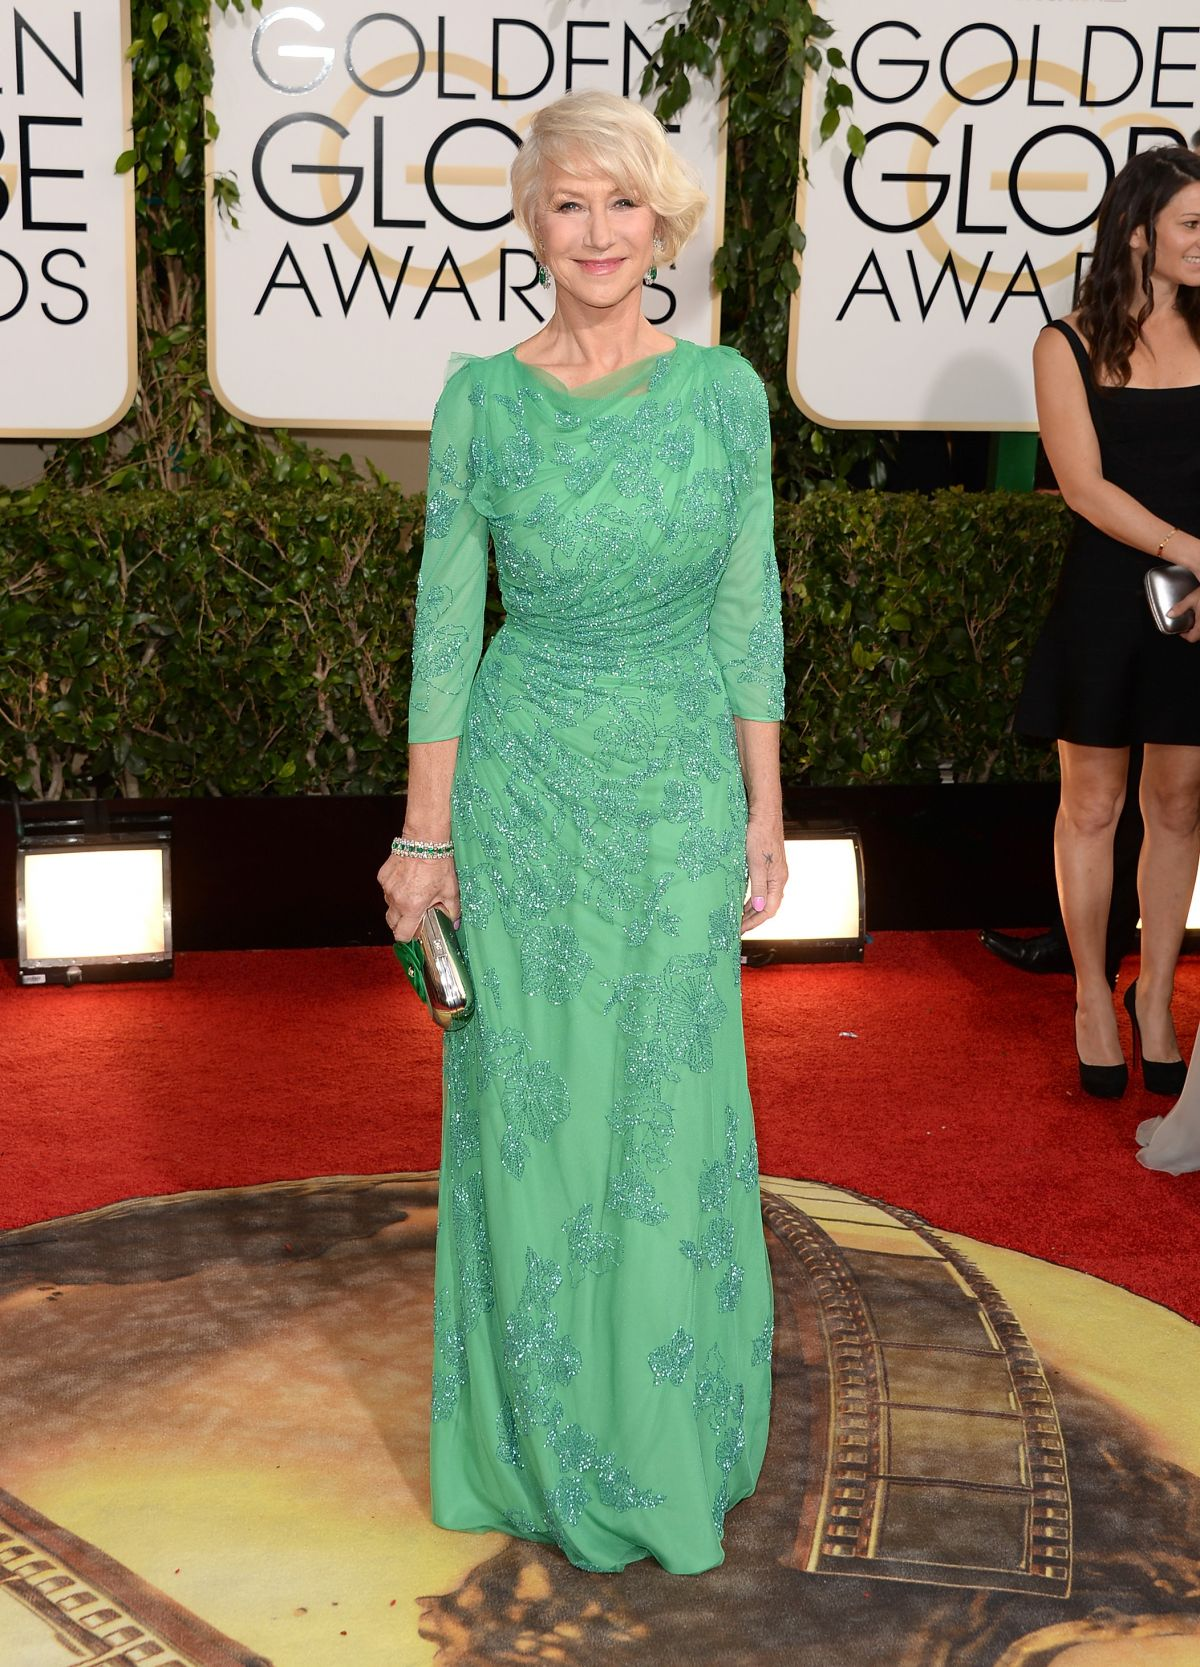 HELEN MIRREN at 71st Annual Golden Globe Awards